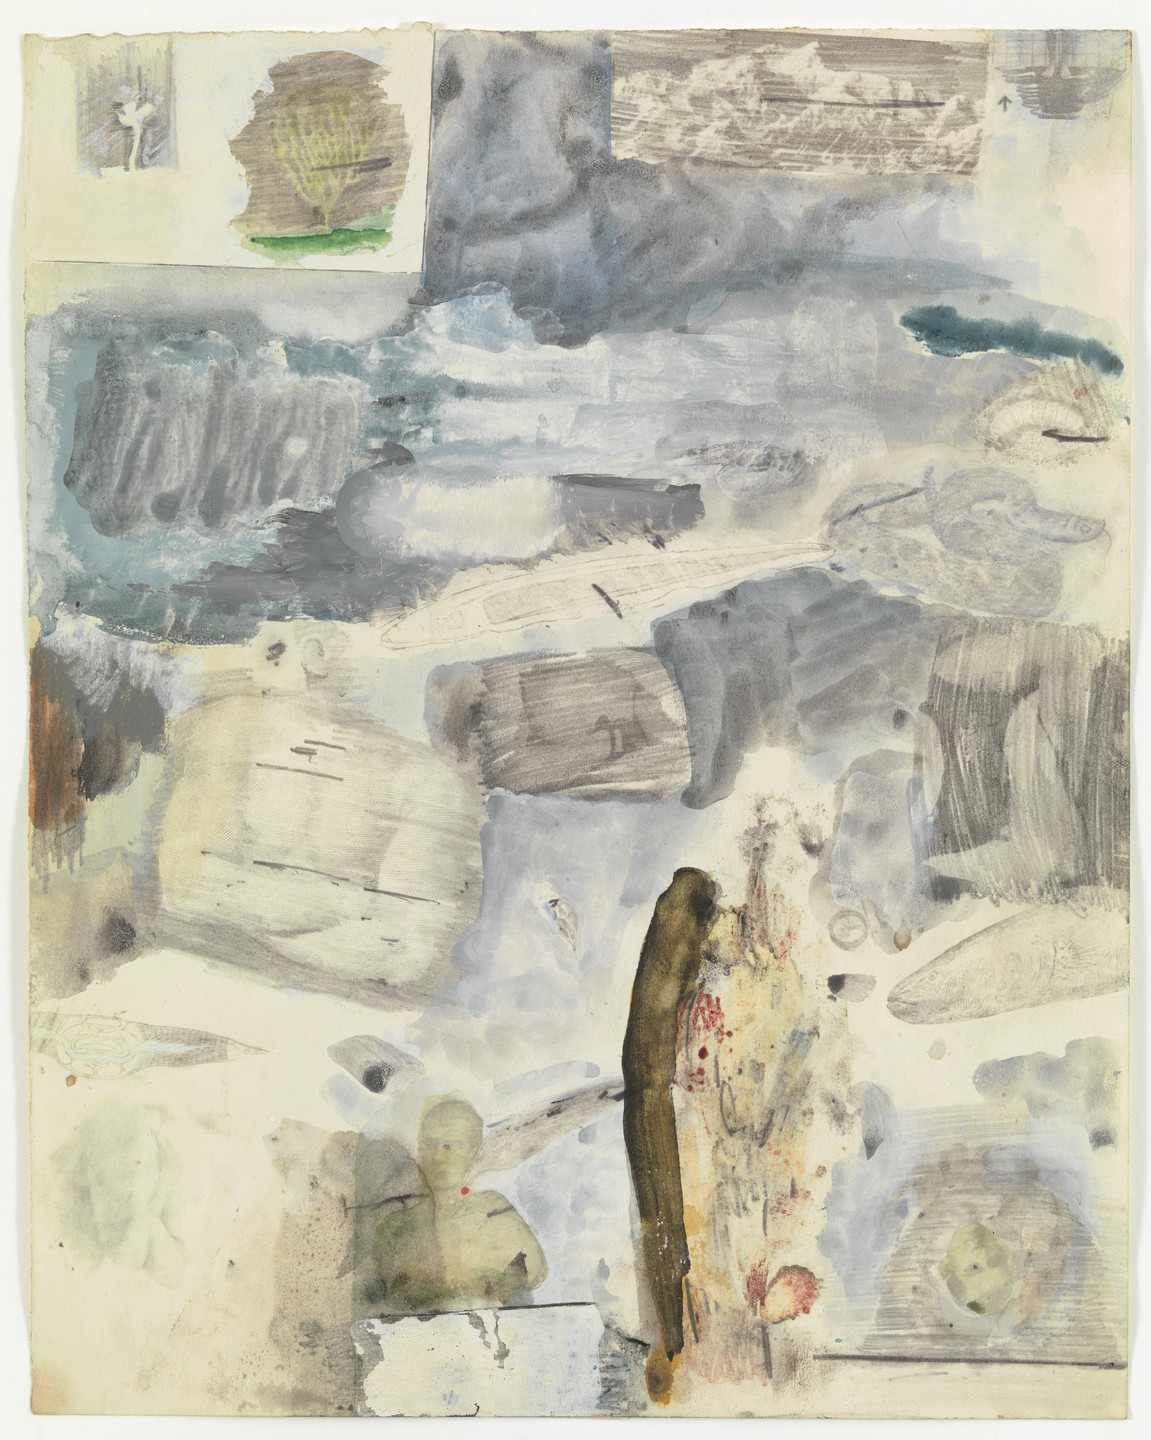 Robert Rauschenberg. Canto XXIV: Circle Eight, Bolgia 7, The Thieves from the series Thirty-Four Illustrations for Dante's Inferno. (1959-60)